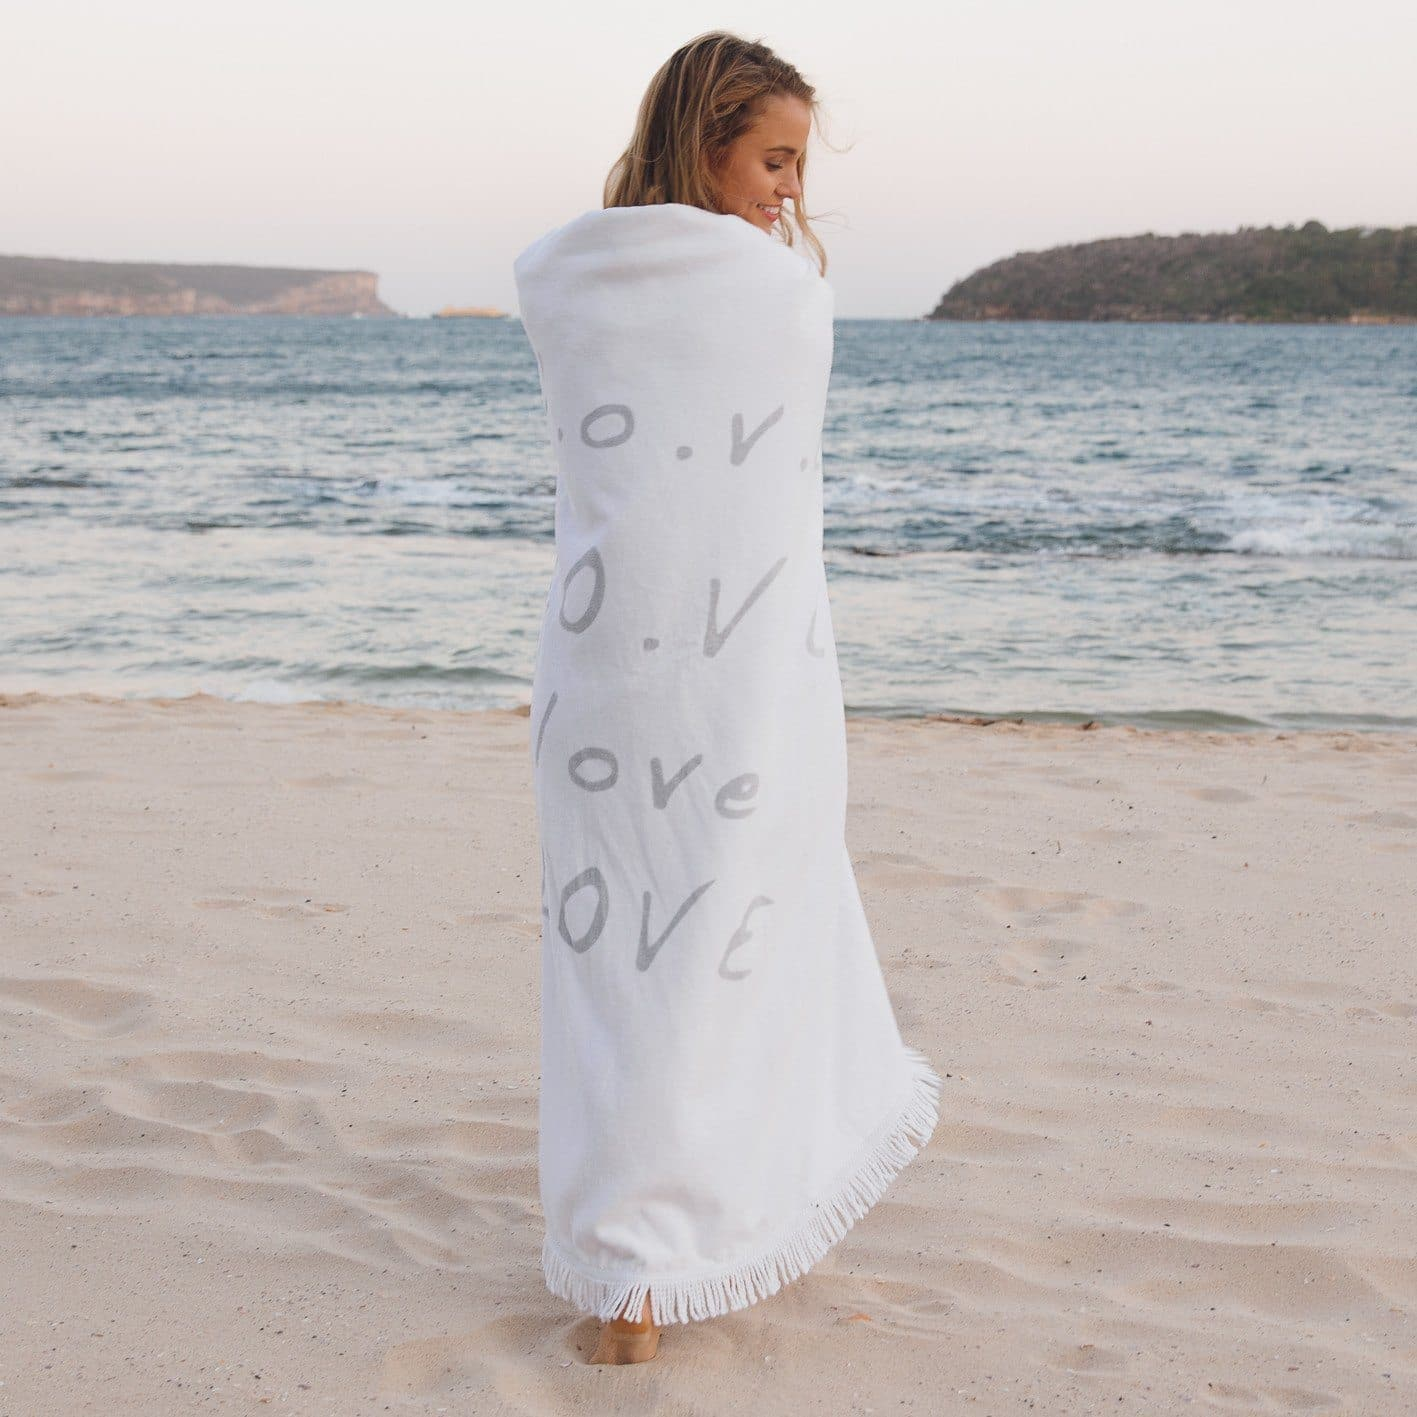 Round Beach Towel - Love Always